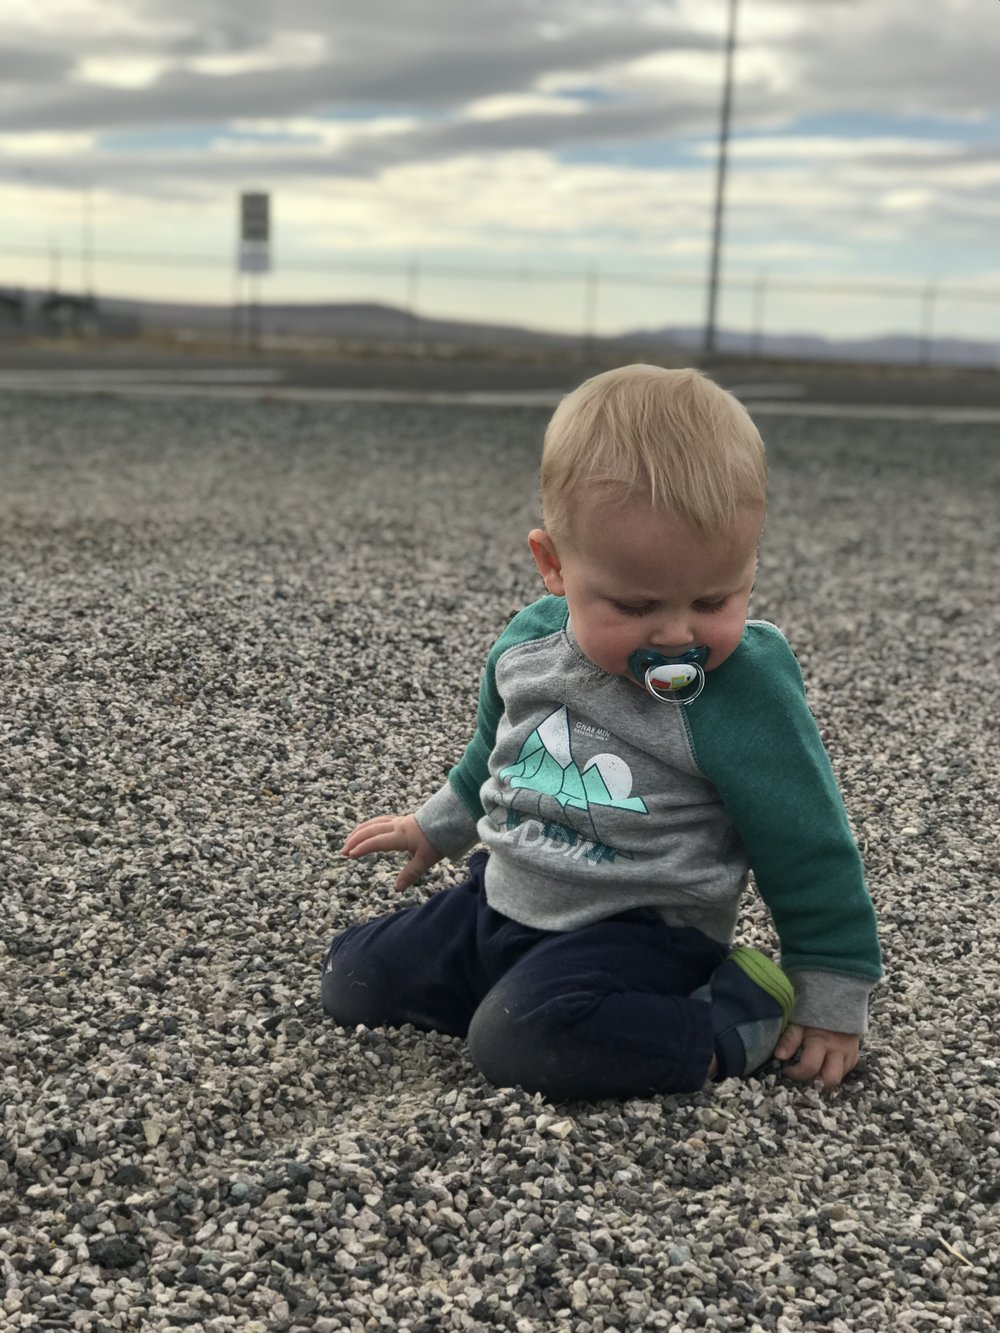 Tommy playing in the gravel at a rest stop